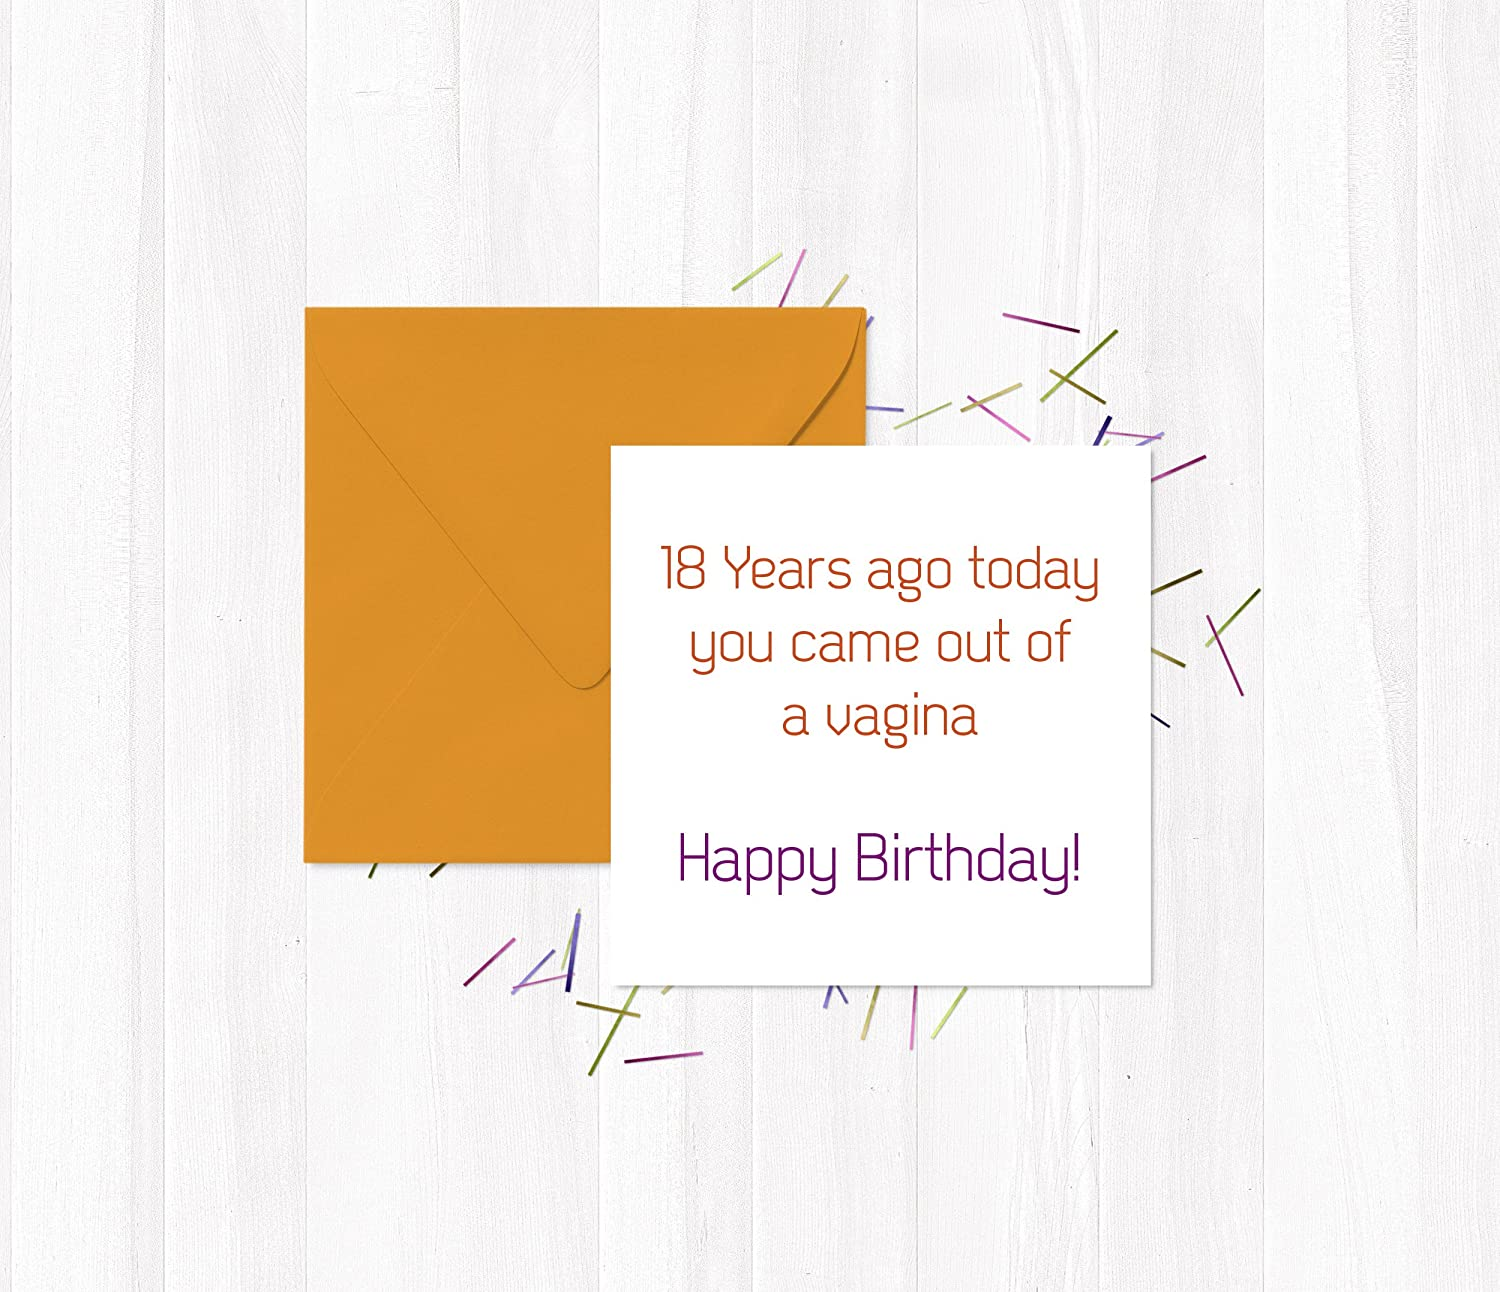 You Came Out of the Vagina Today Funny Birthday Card Custom Greeting Card Congrats its your birthday